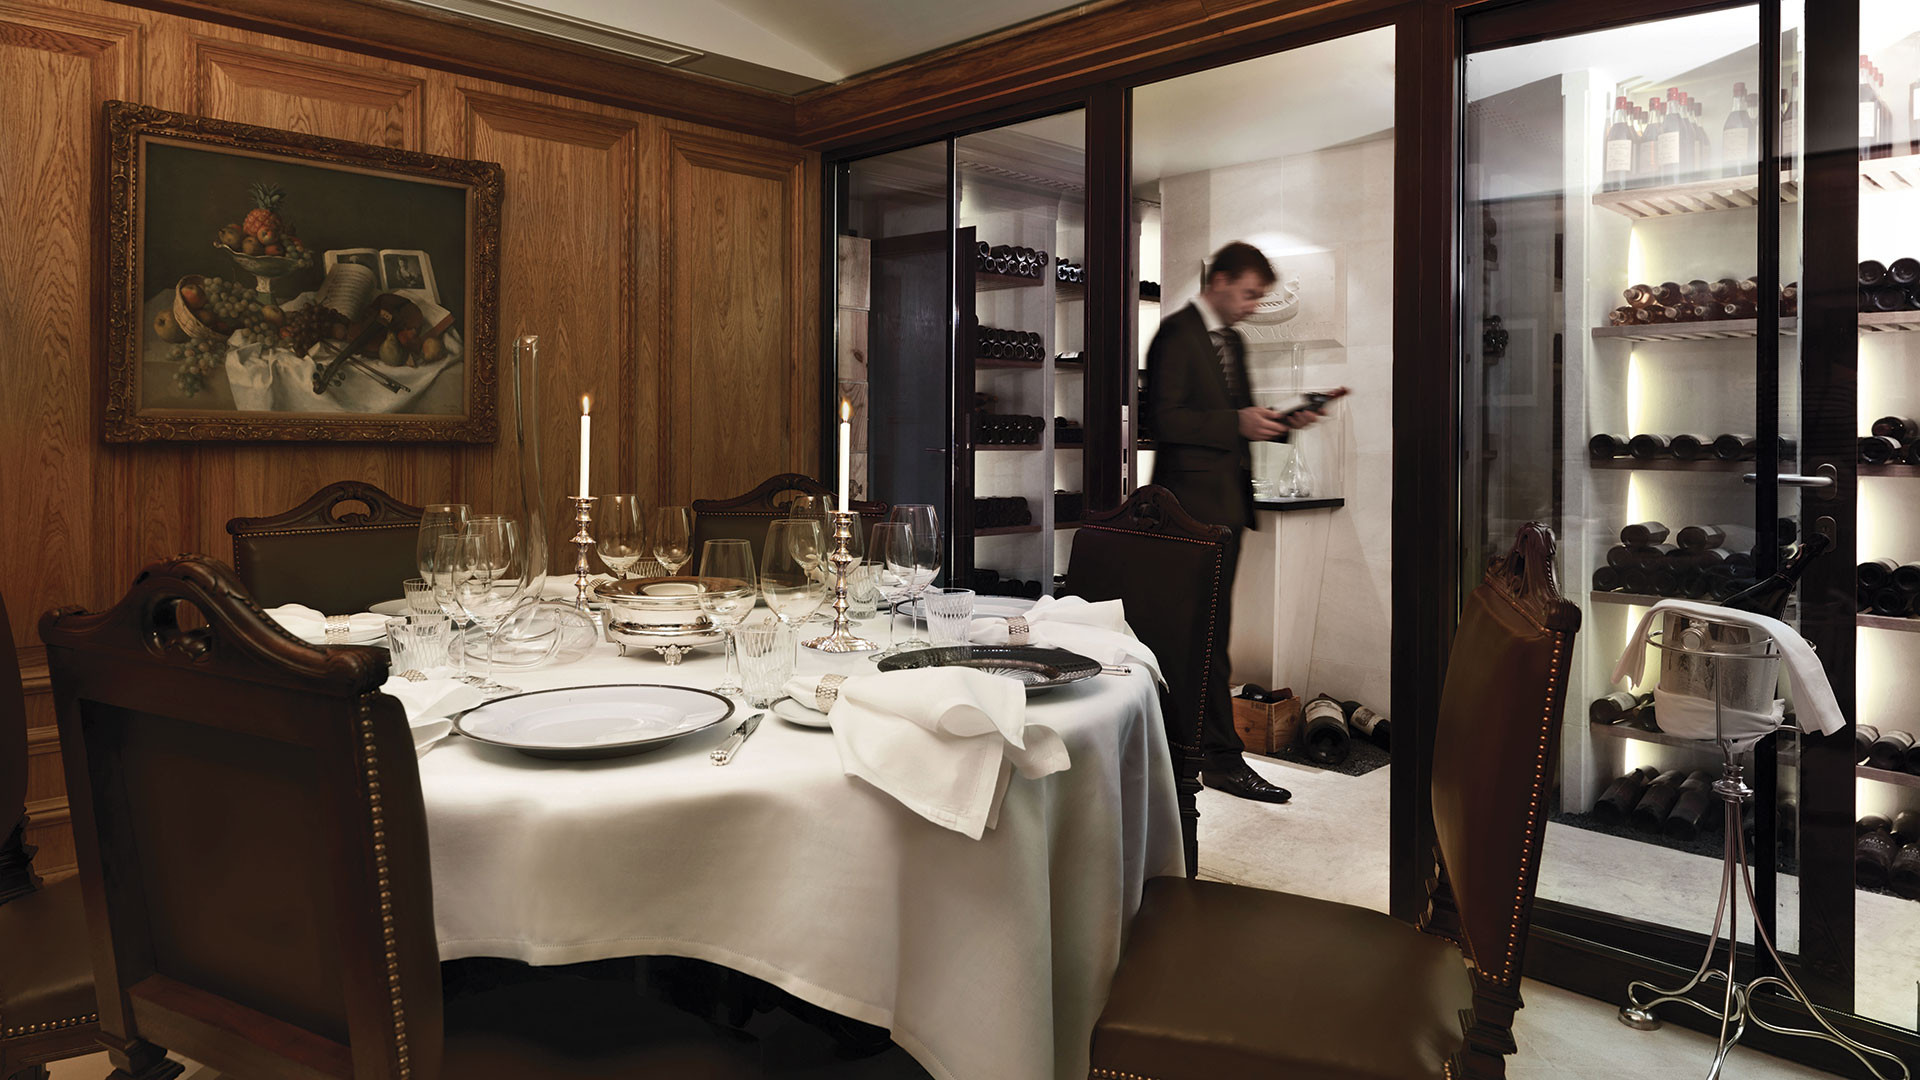 The Sommelier's Table at Hélène Darroze at The Connaught, a 5 Rosette winner